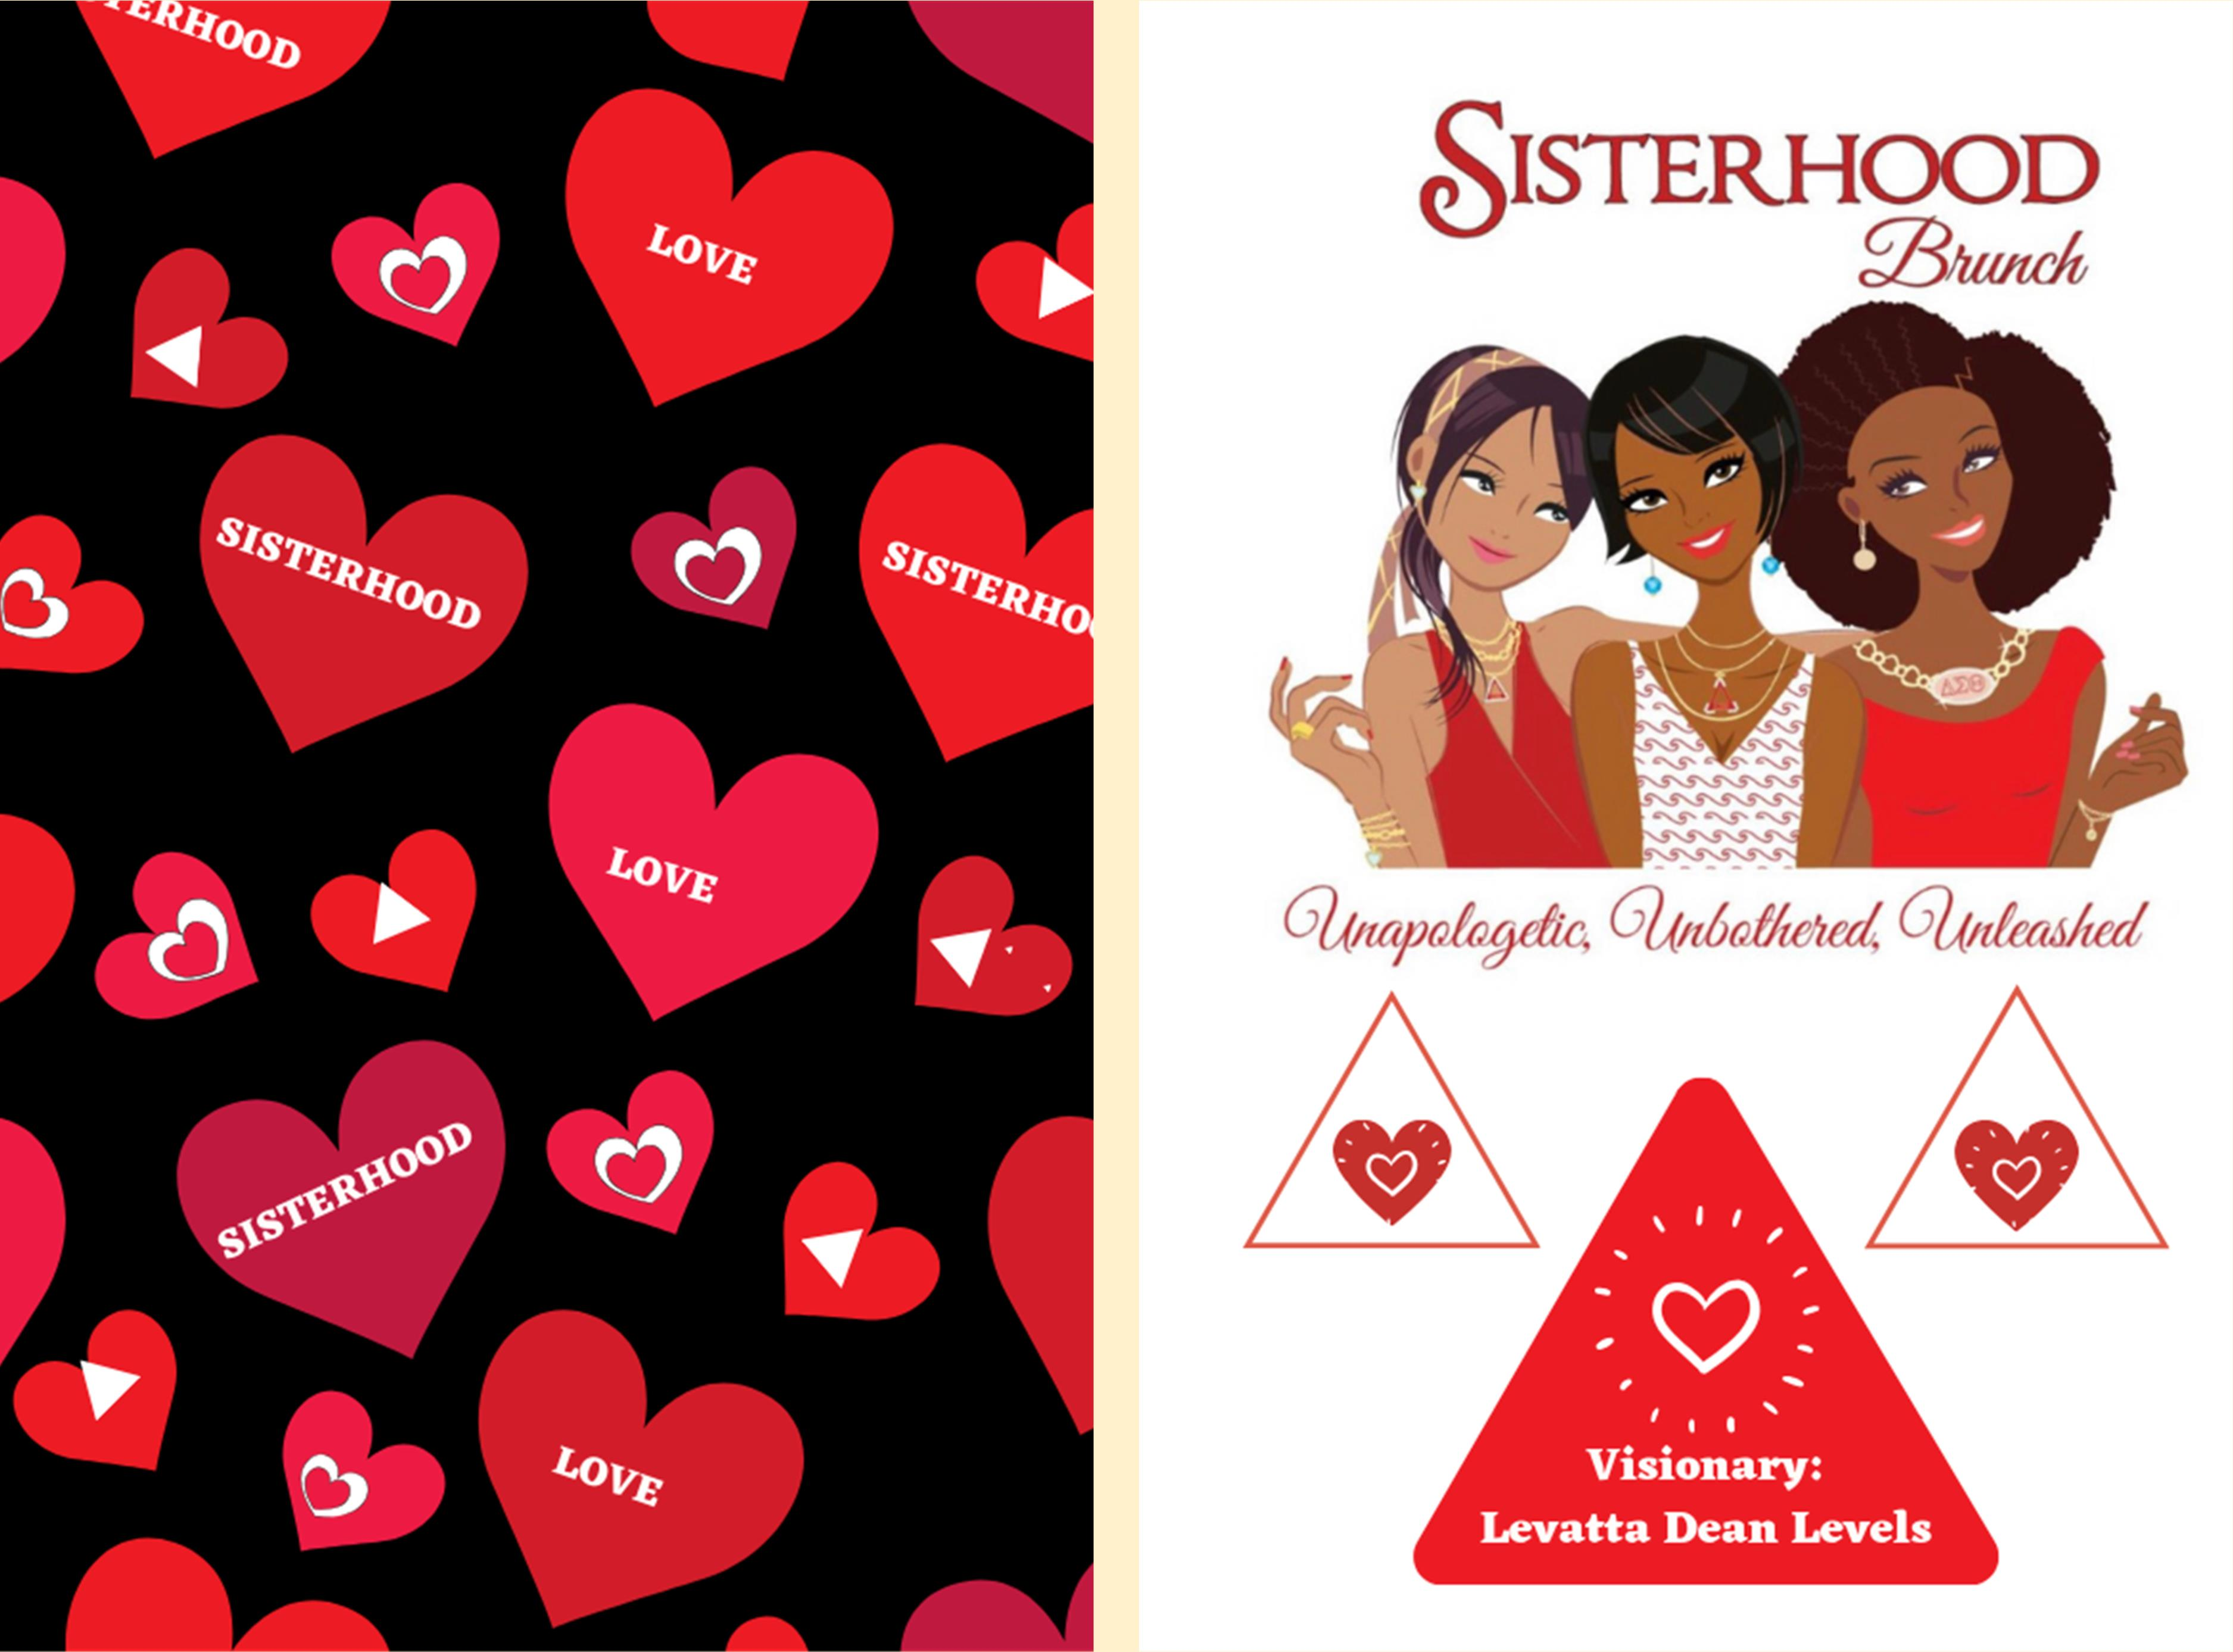 Sisterhood Brunch by Levatta D. Levels cover image